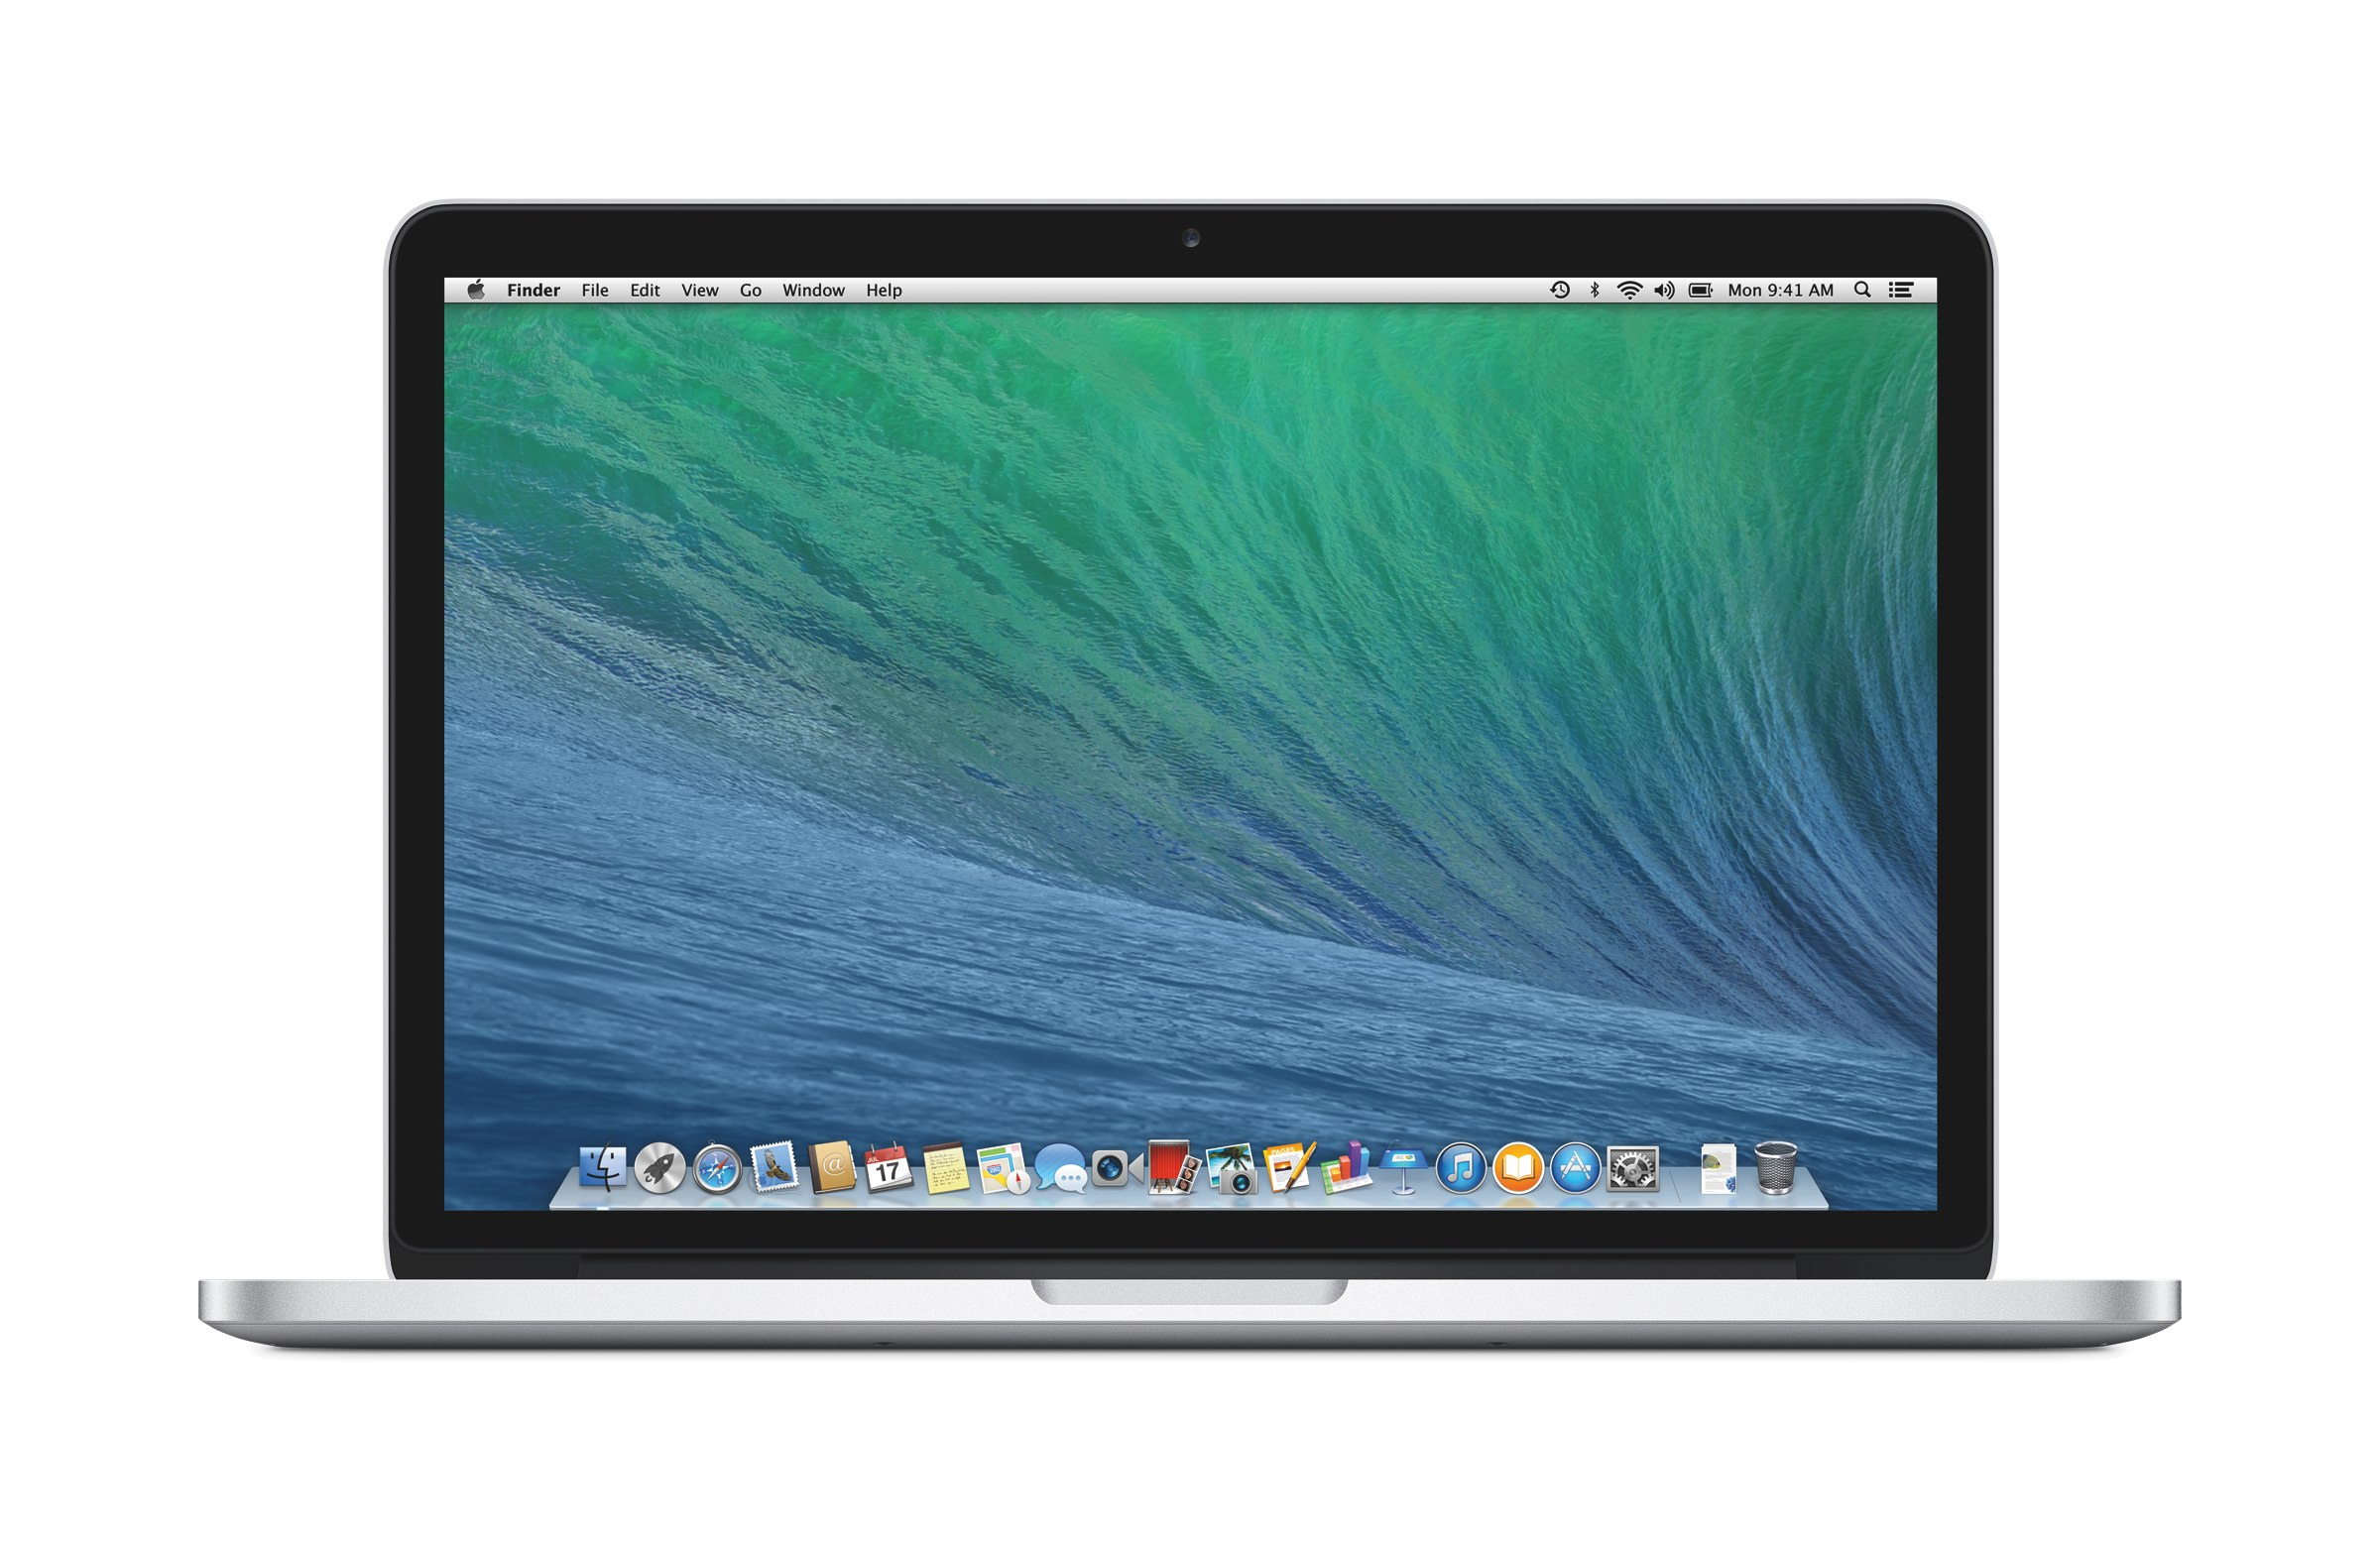 "Macbook Pro 13"" with Retina display 2.8GHz 512GB"